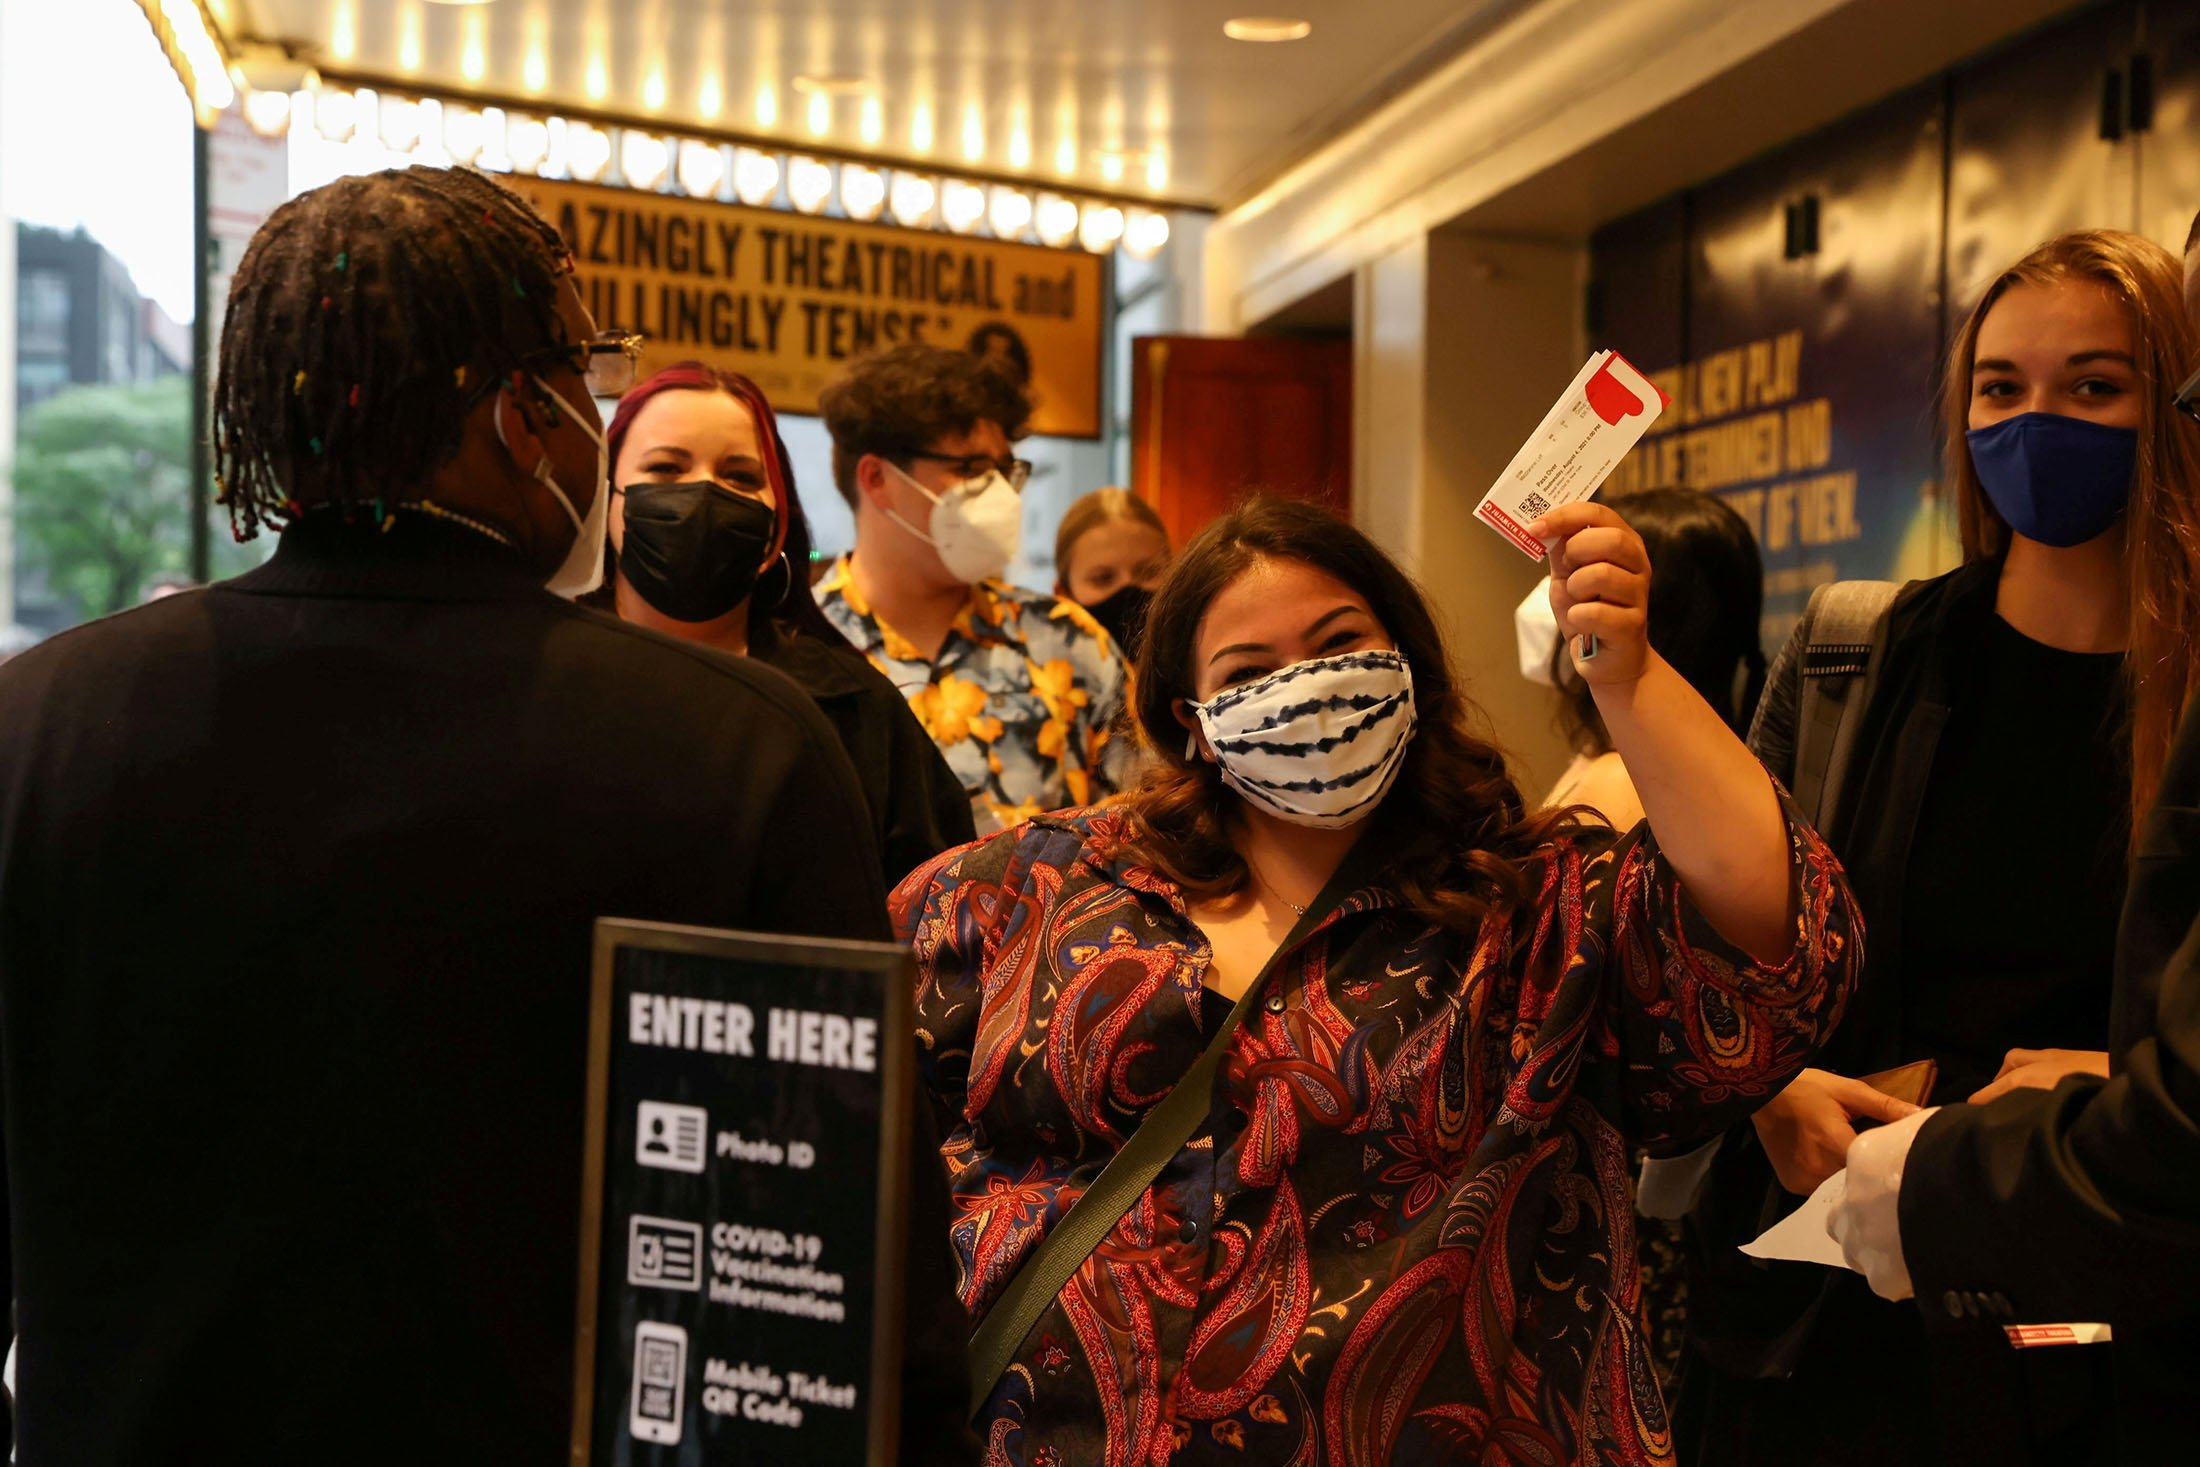 A guest waves her tickets while waiting in line at the opening night of previews for 'Pass Over,' following the 17-month shutdown of Broadway due to COVID-19, at the August Wilson Theater in New York City, U.S., Aug. 4, 2021. (Reuters Photo)